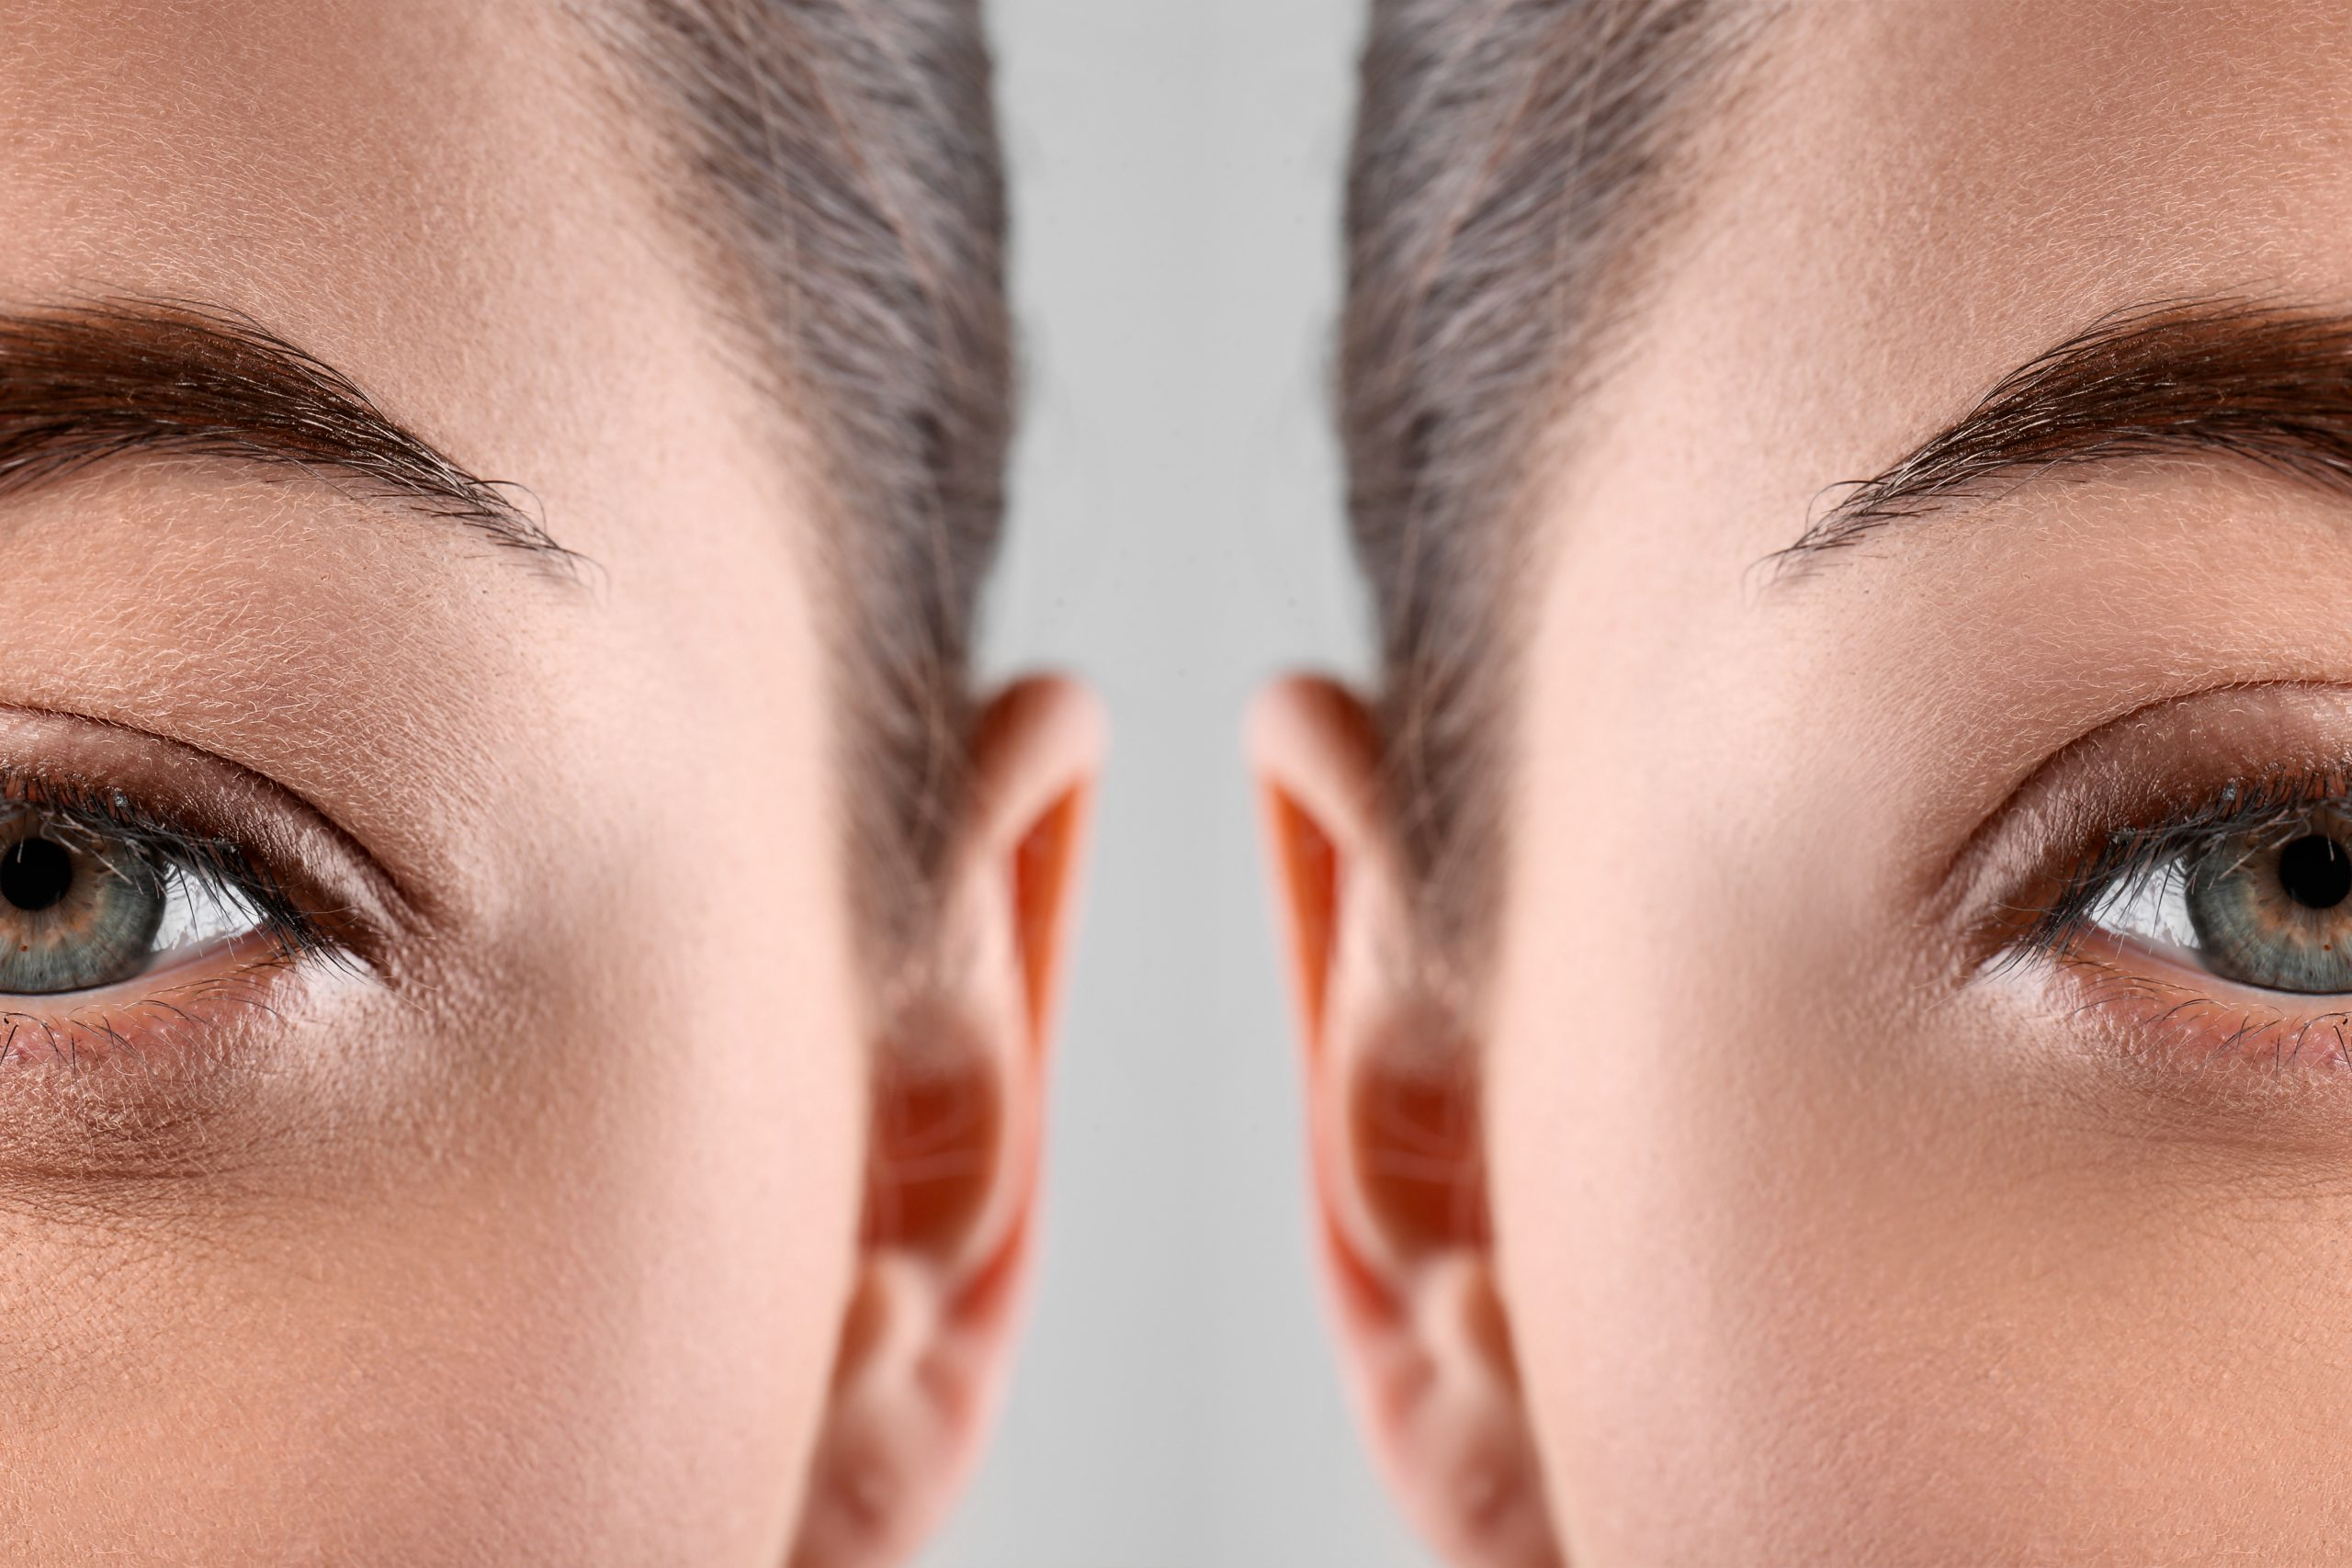 Woman before and after blepharoplasty procedure, closeup. Cosmet